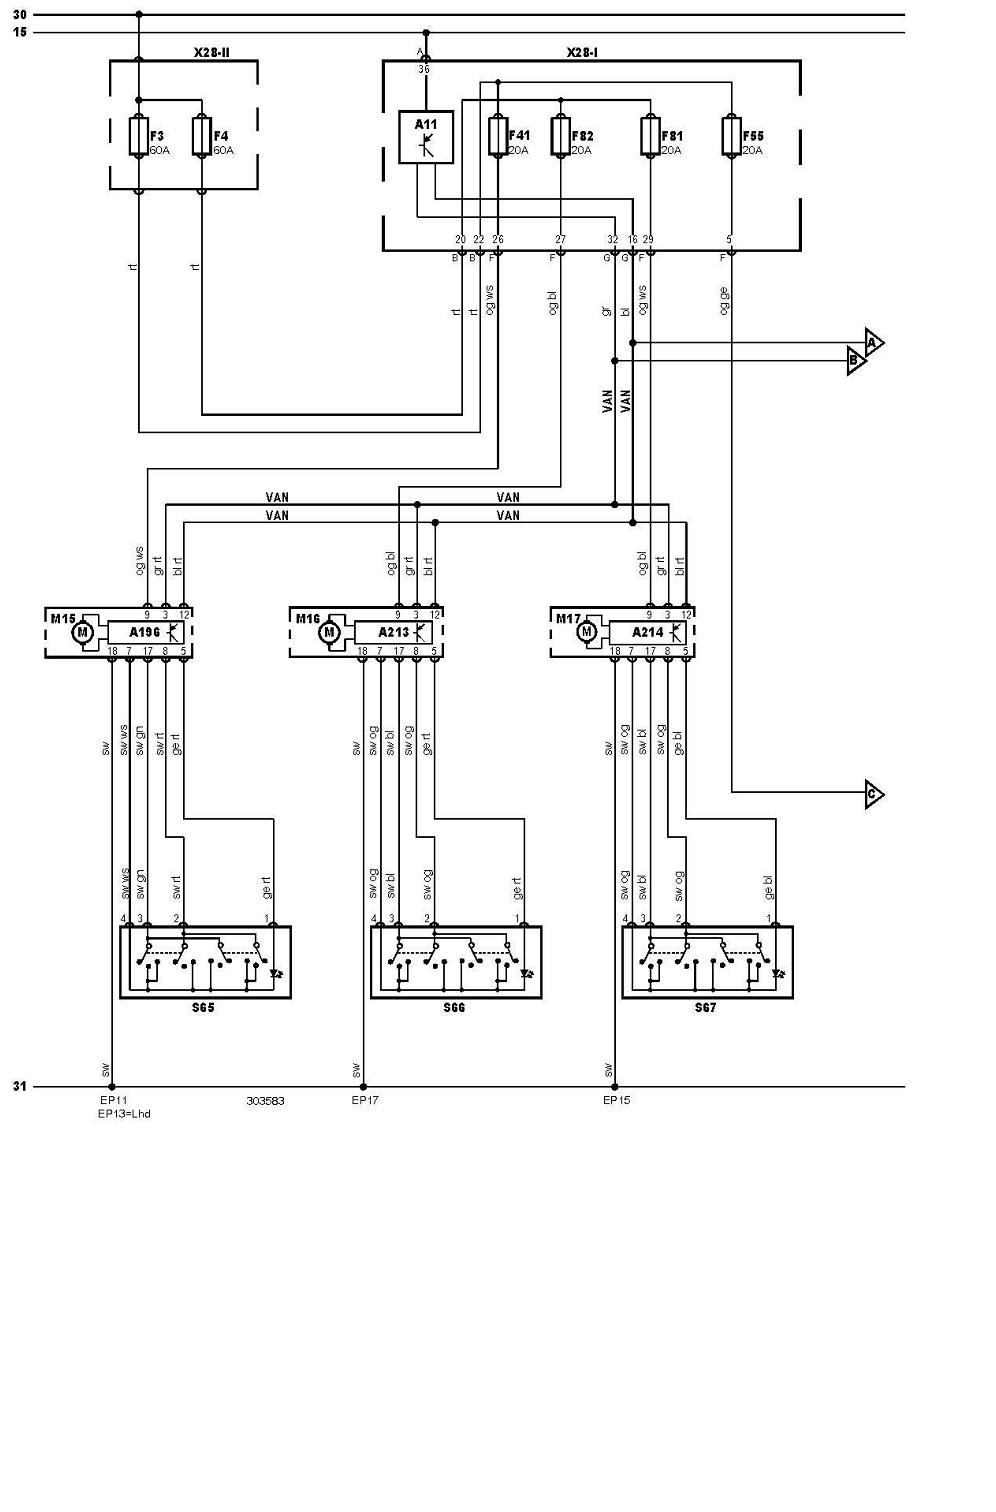 wiring diagram for a ford c max wiring image wiring diagrams of a home network wiring wiring diagram collections on wiring diagram for a ford ford c max